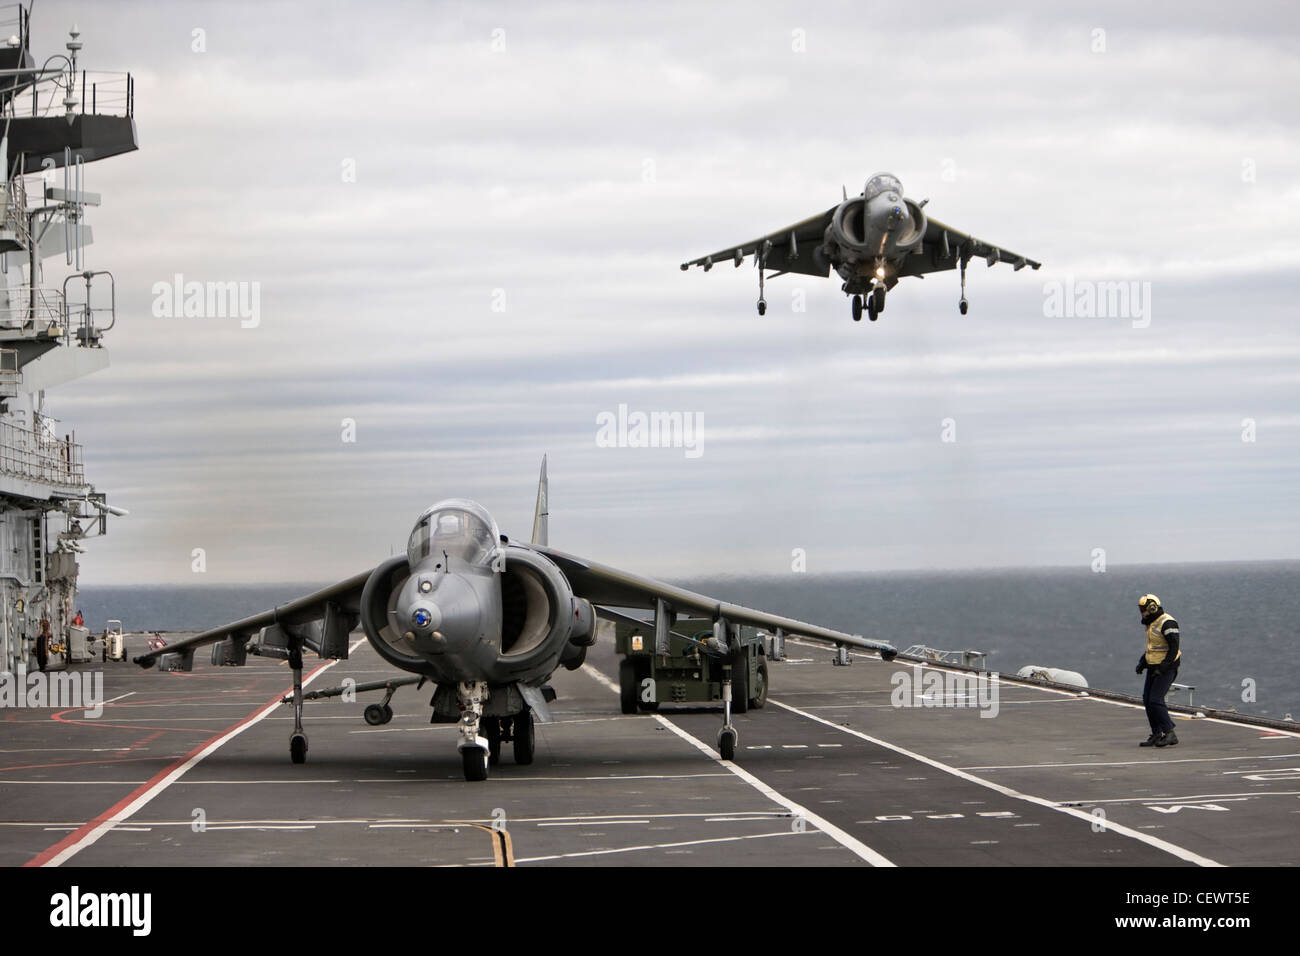 Harrier jet and crew on naval aircraft carrier HMS Illustrius - Stock Image